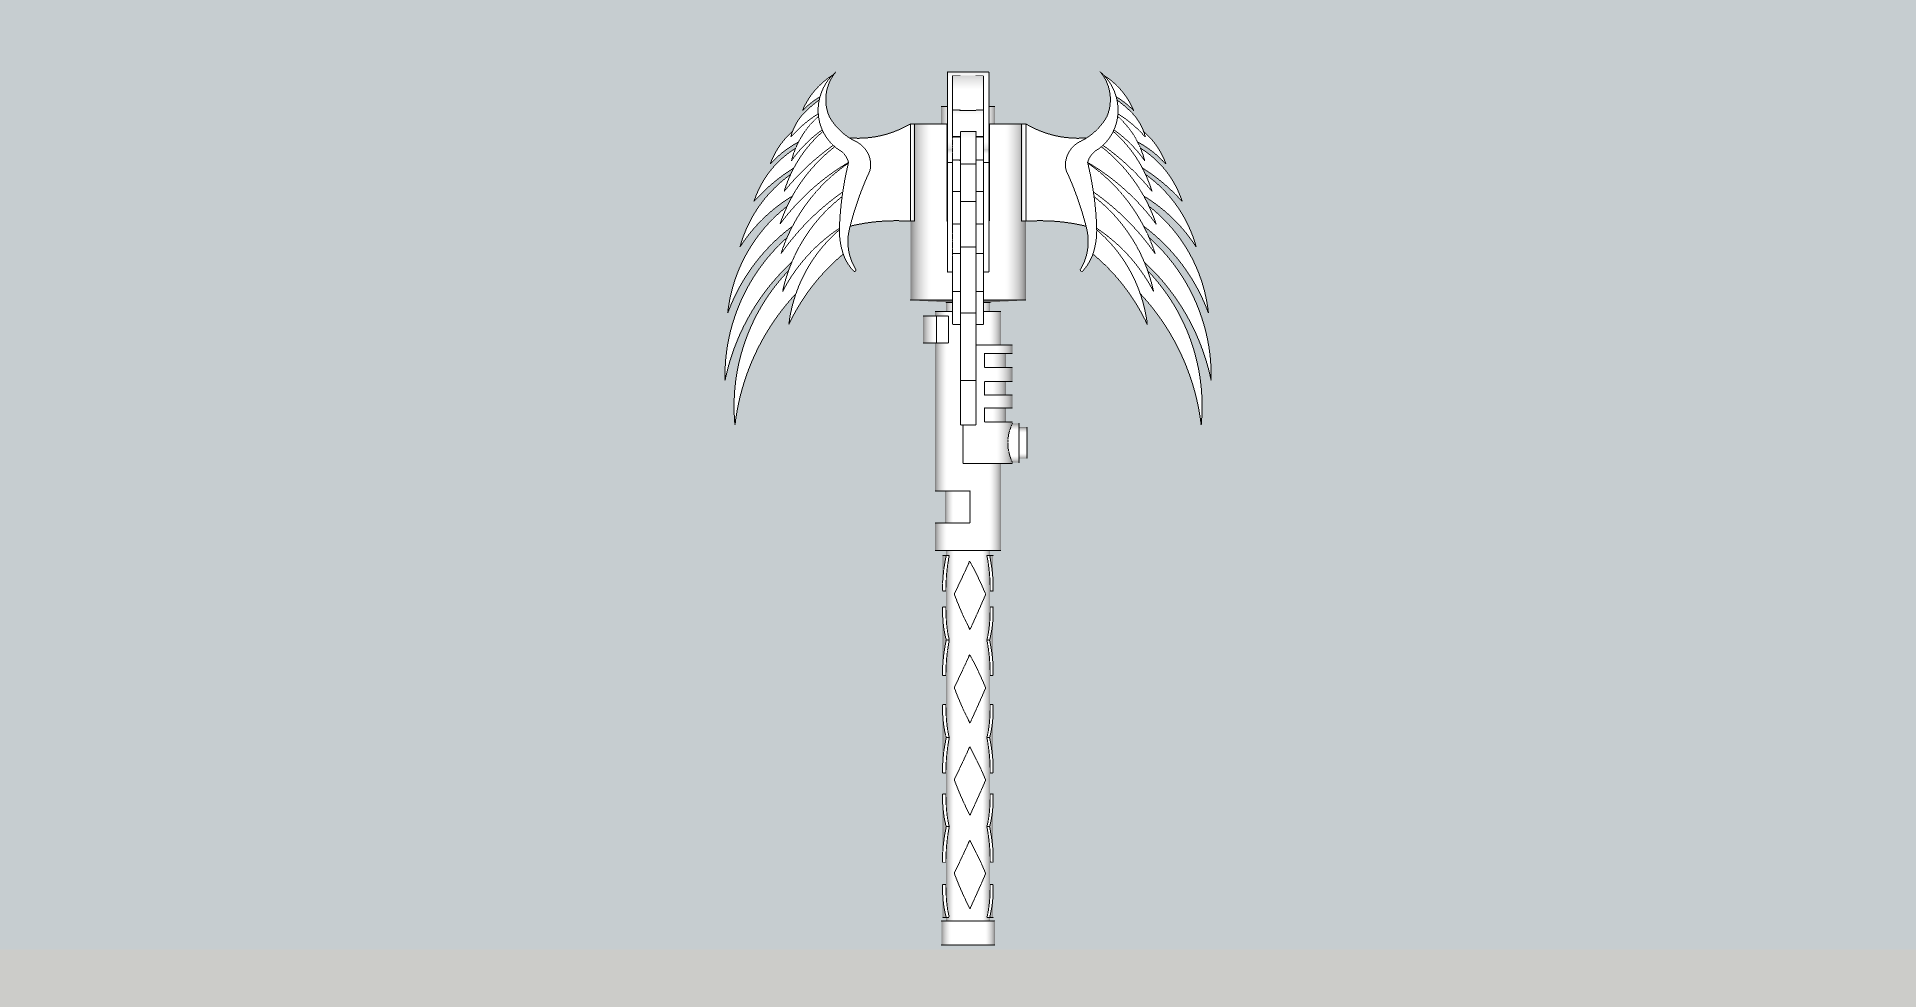 winged_mace_2_by_s3dition-d8jvd4a.png